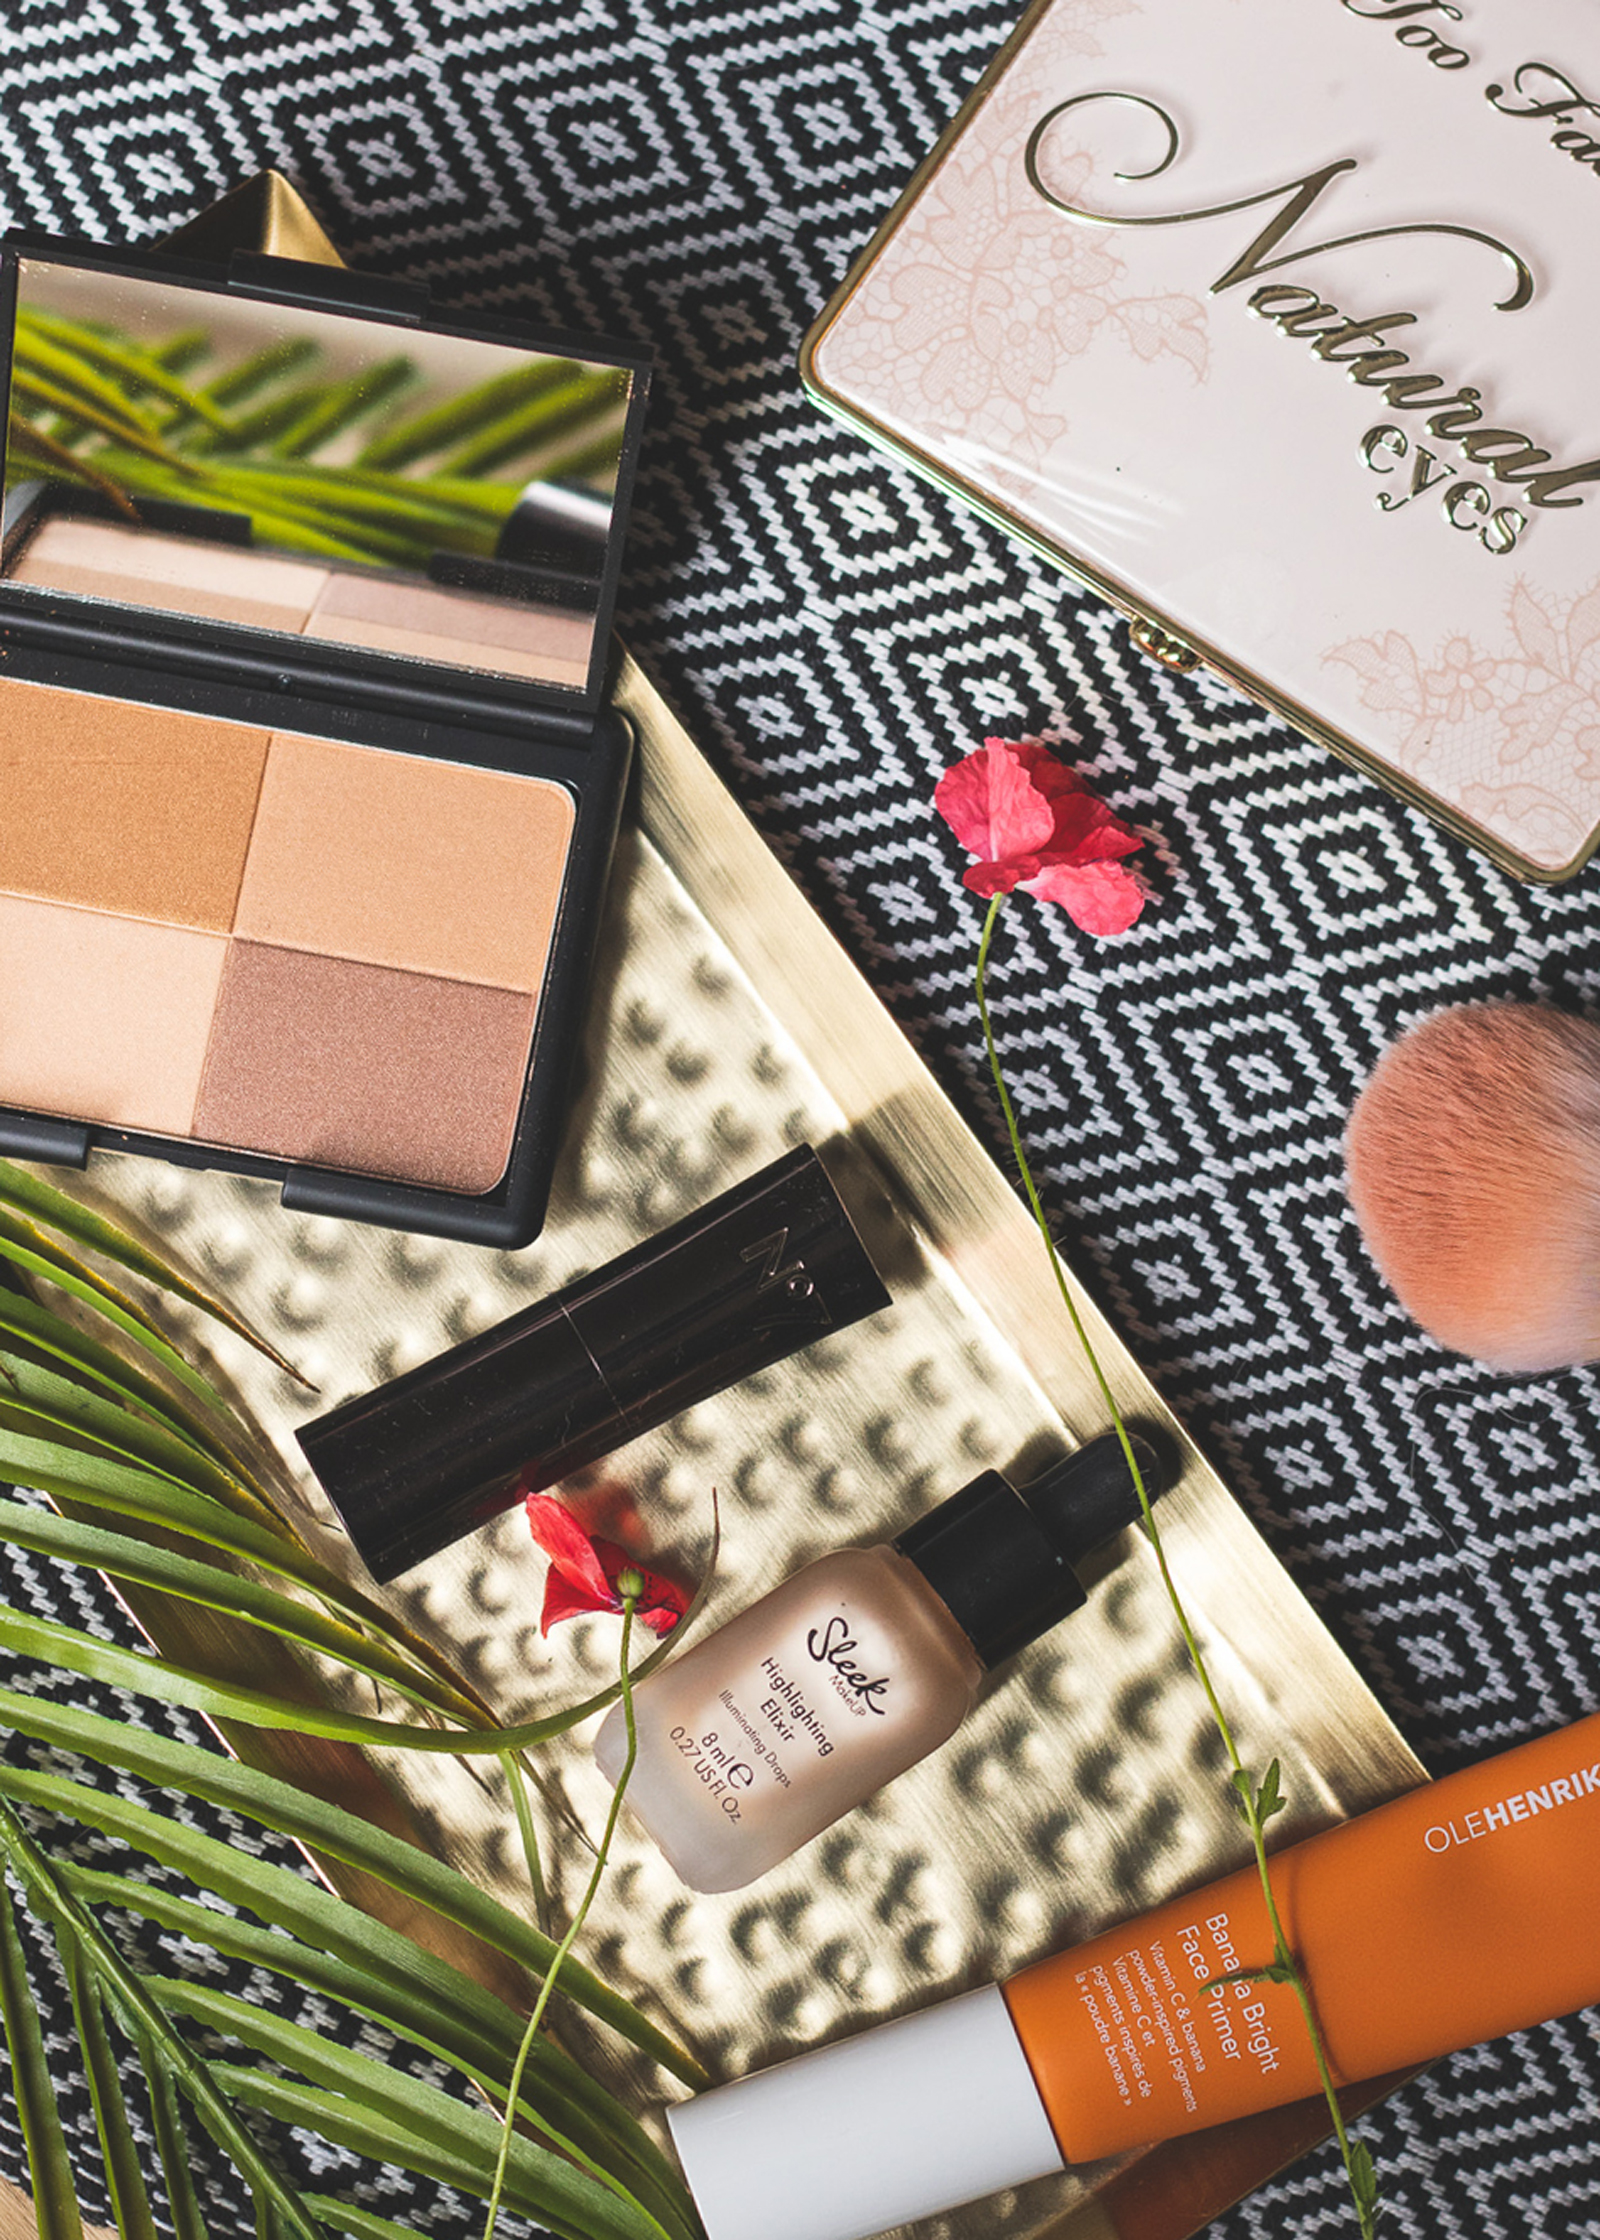 Boots Summer Beauty Edit